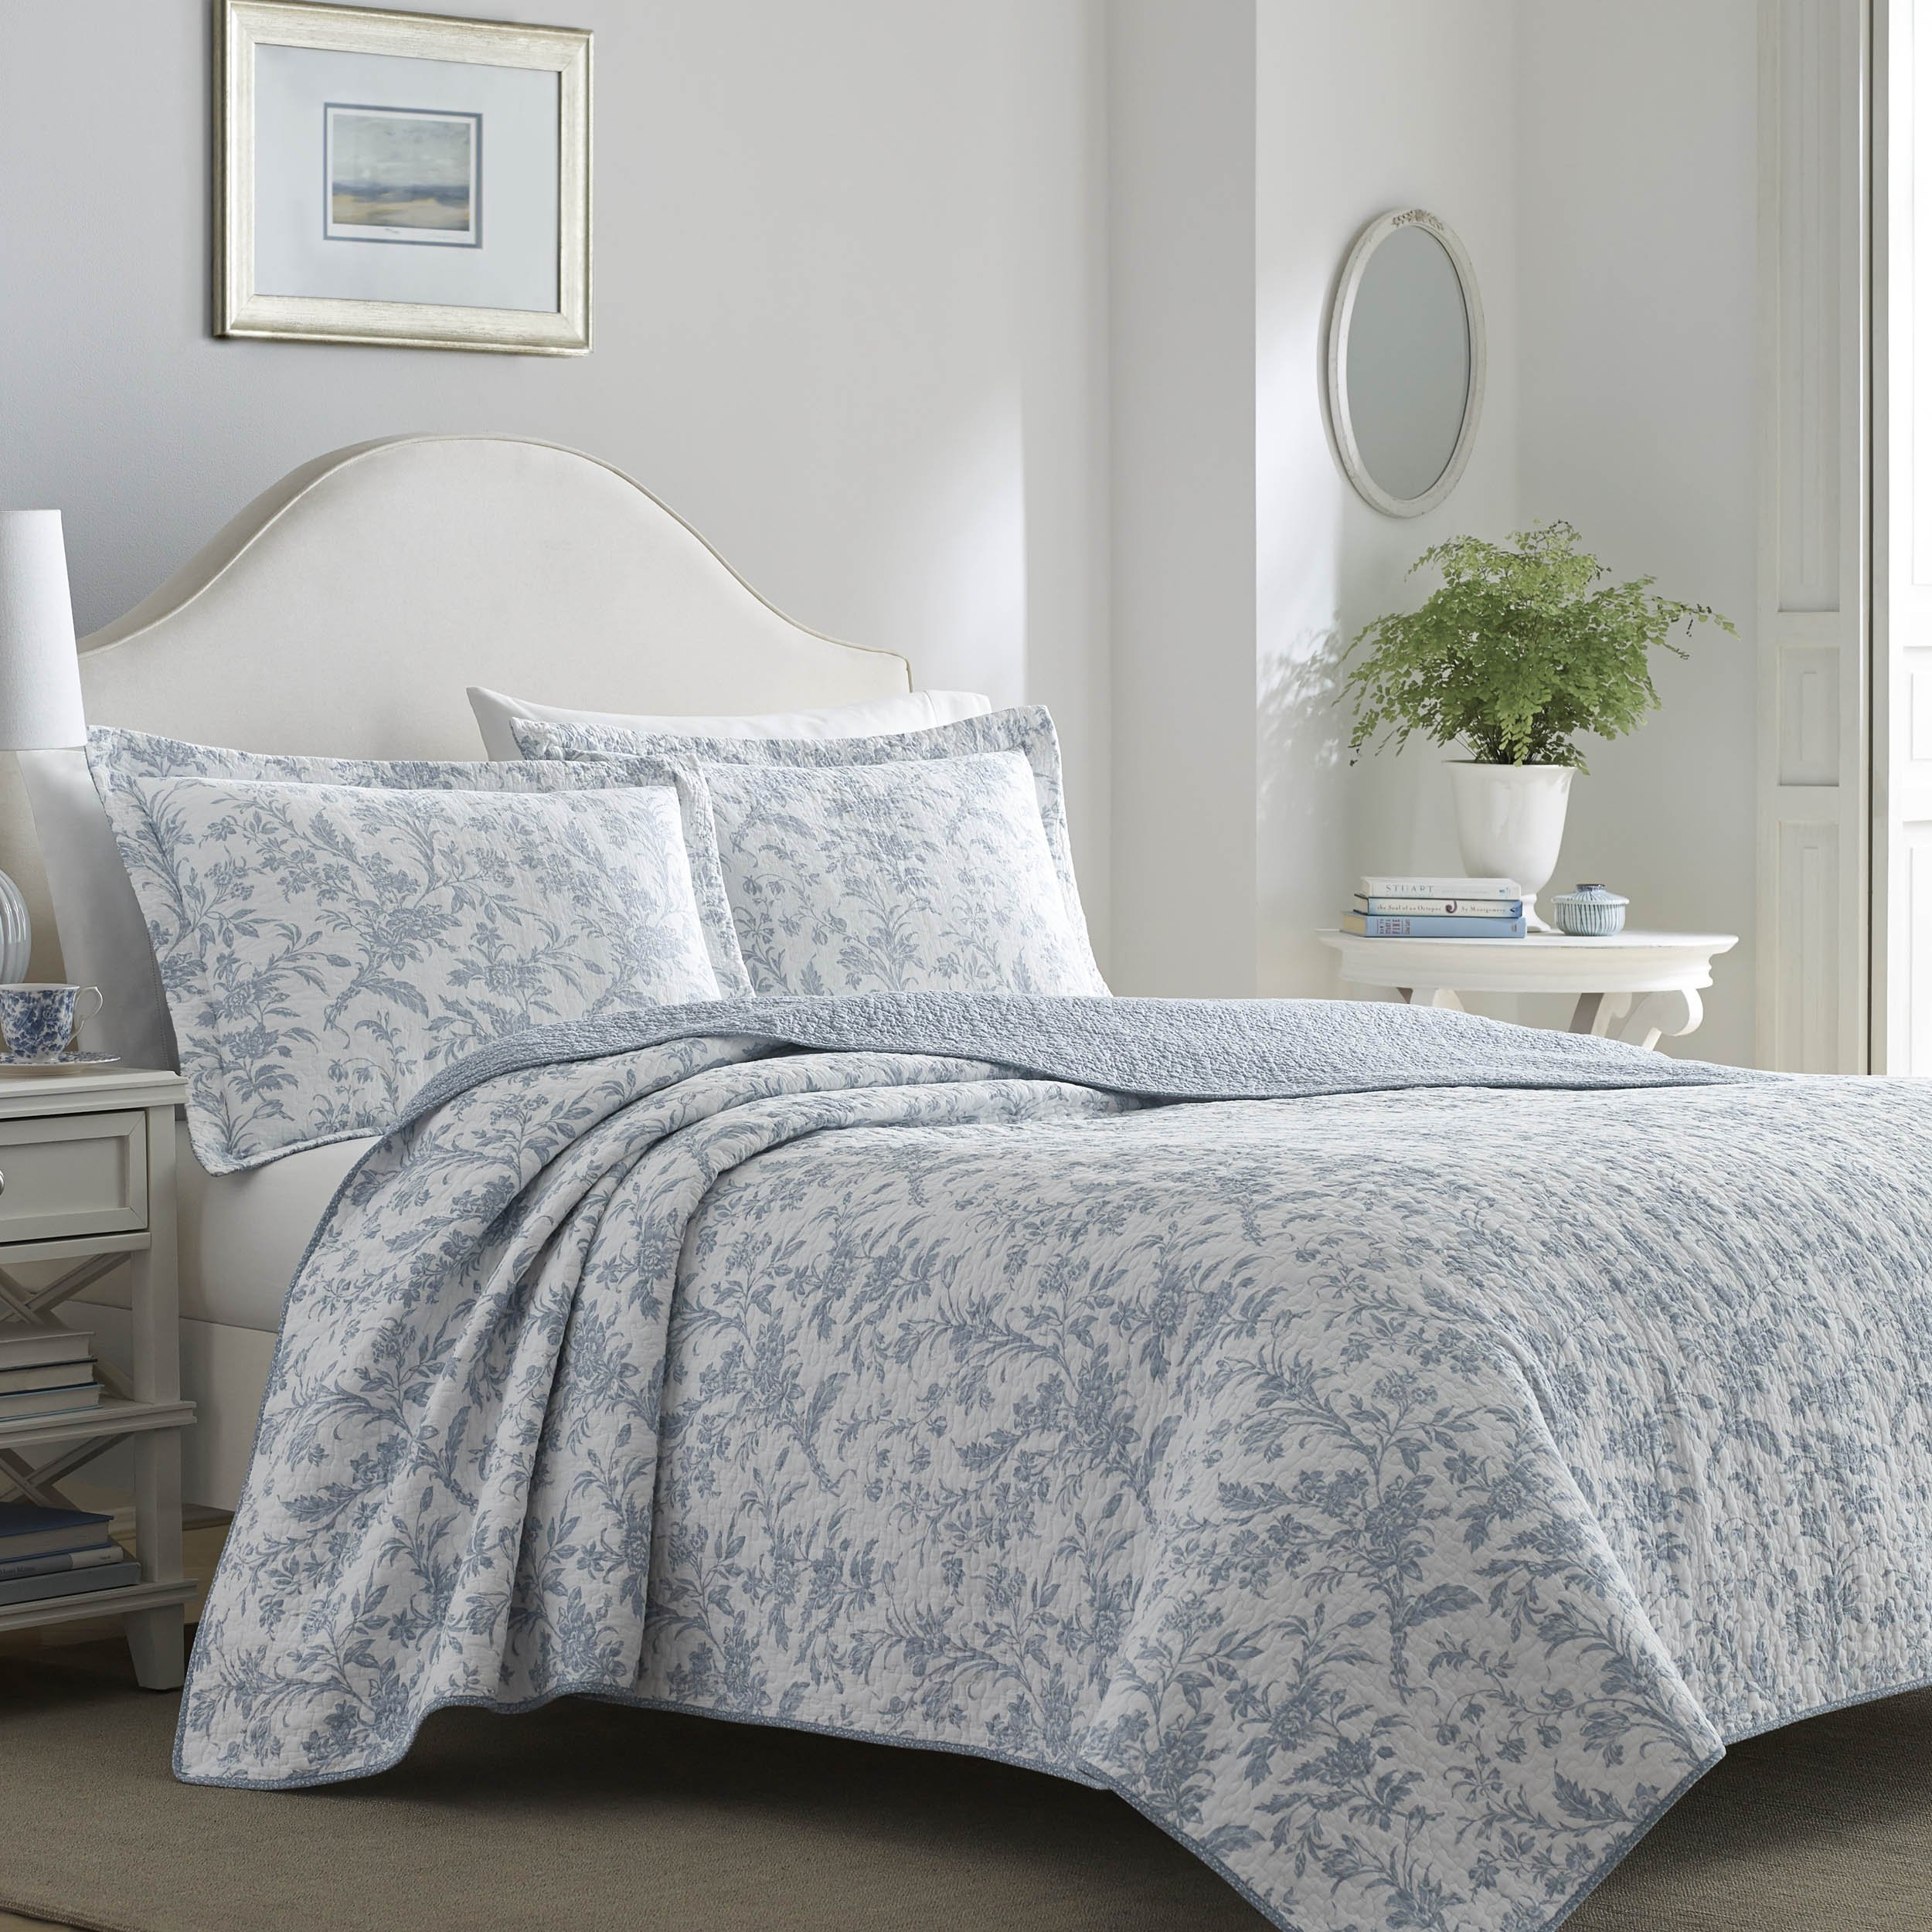 Laura Ashley 221083 Amberley Quilt Set, King, Spa Blue